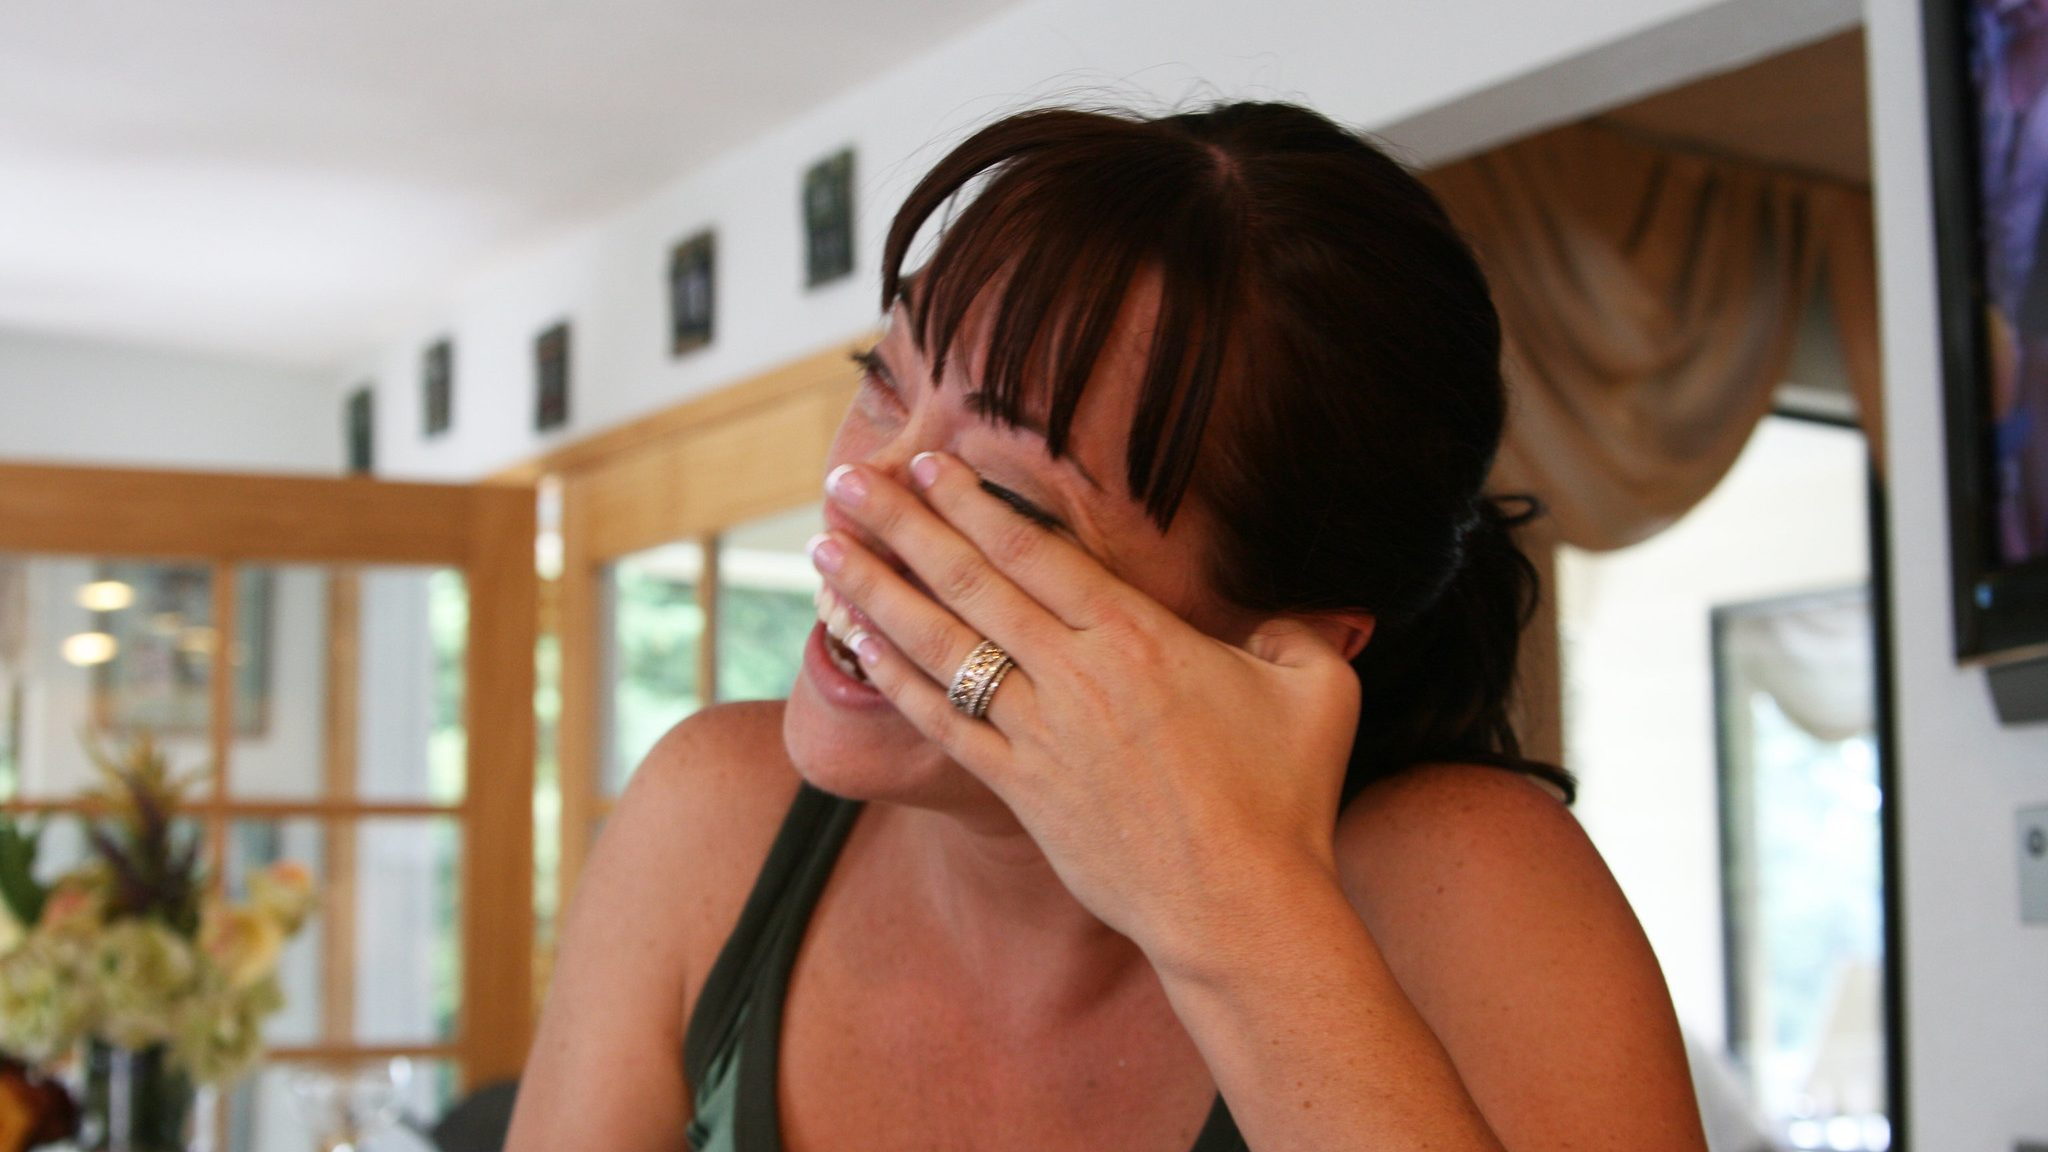 Image: Woman laughing and wiping her eyes